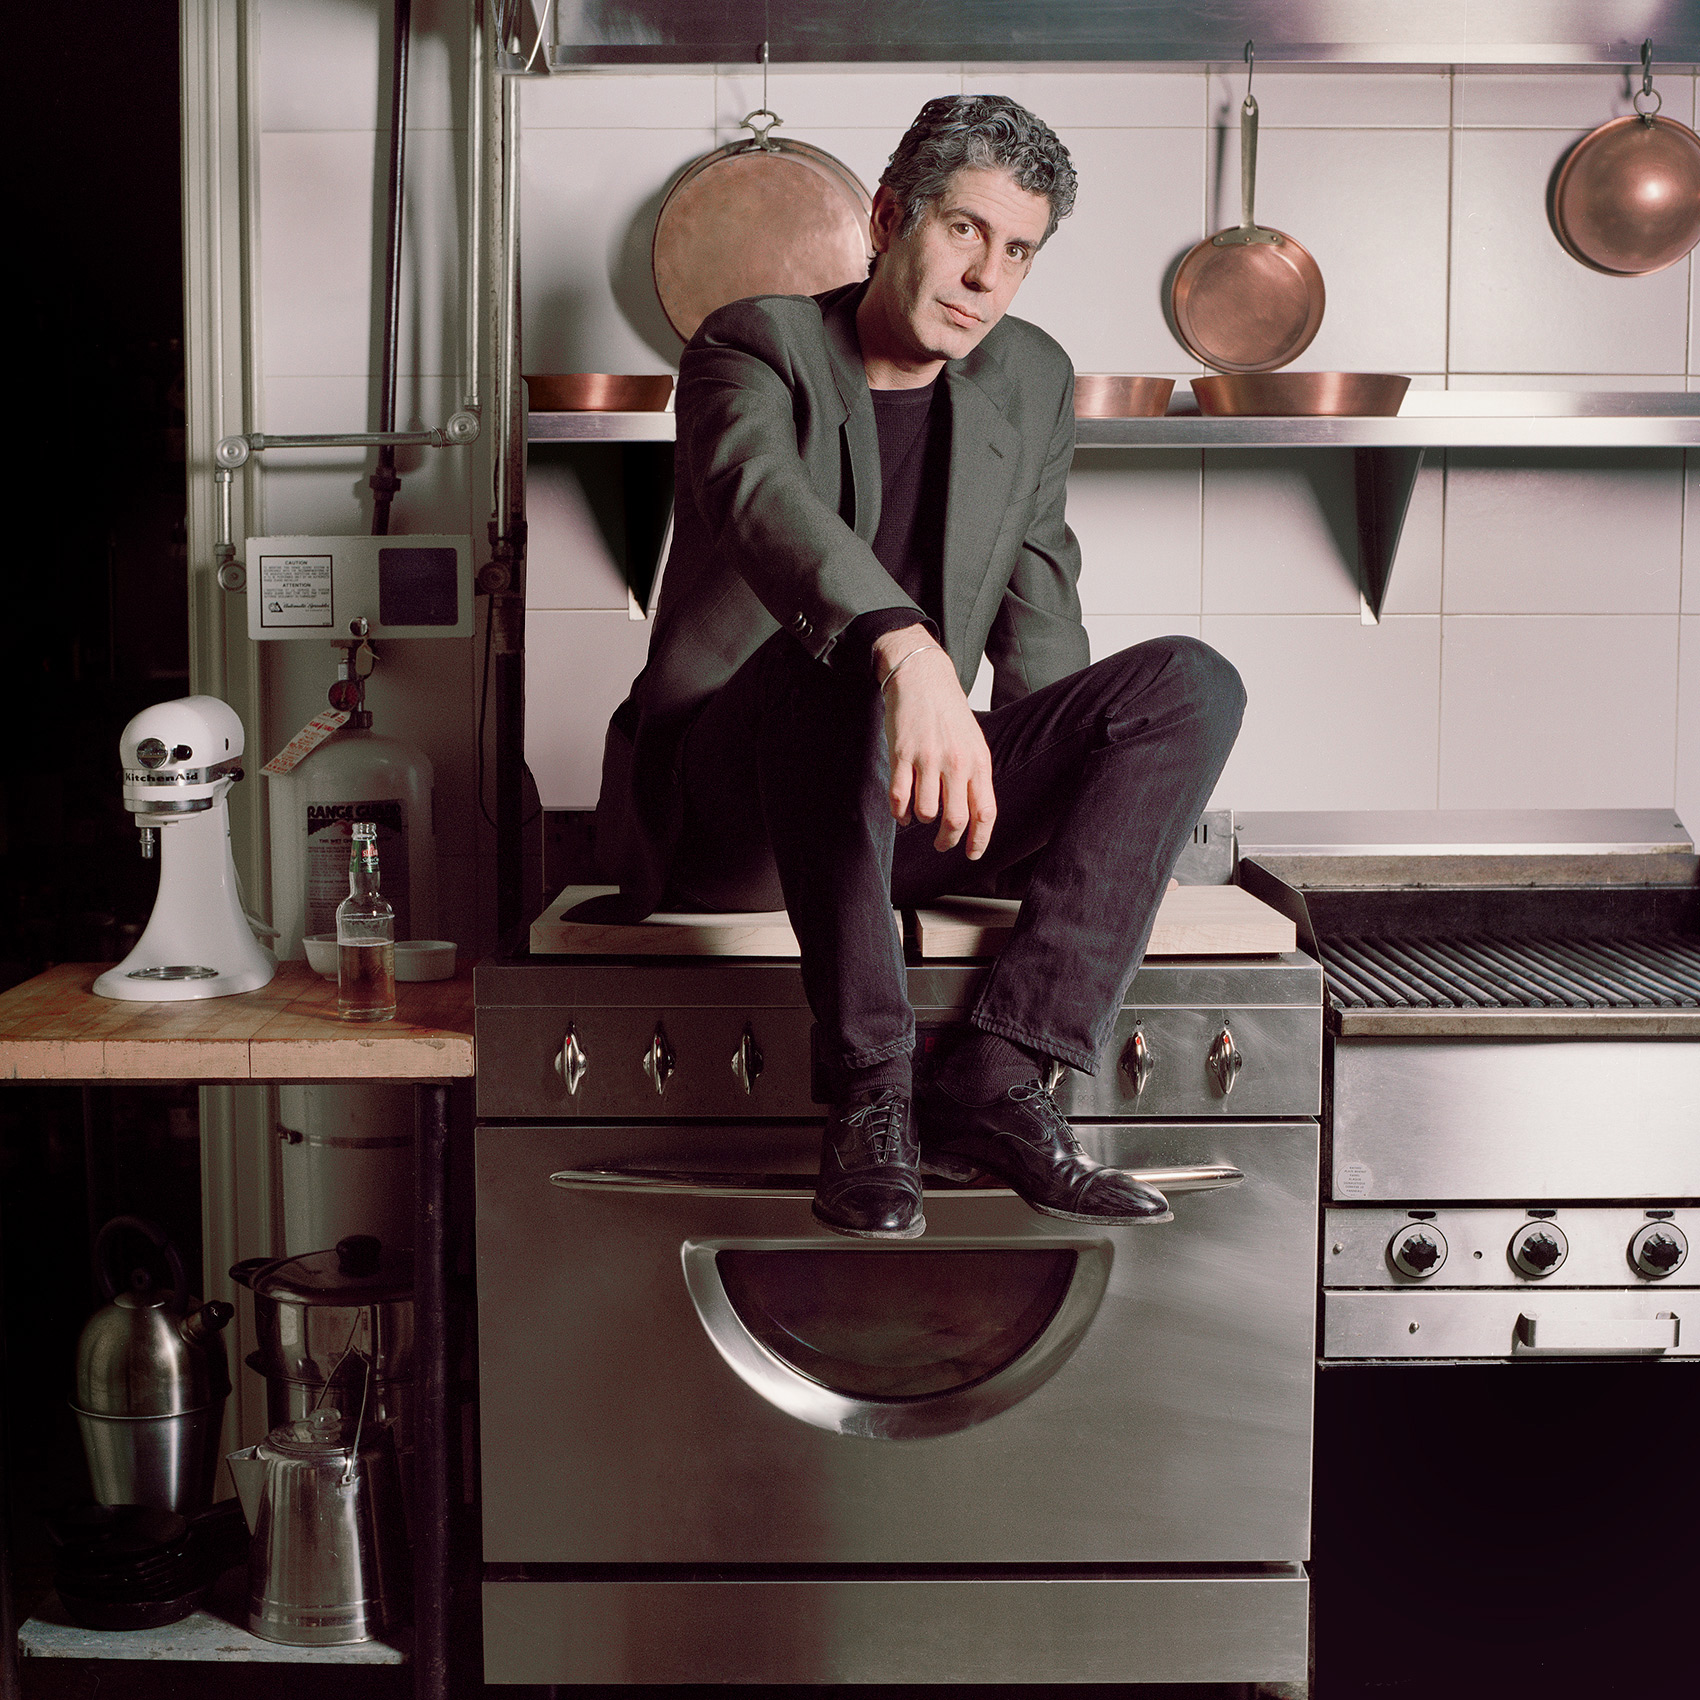 anthony_bourdain_by_toronto_celebrity_photographer_john_hryniuk